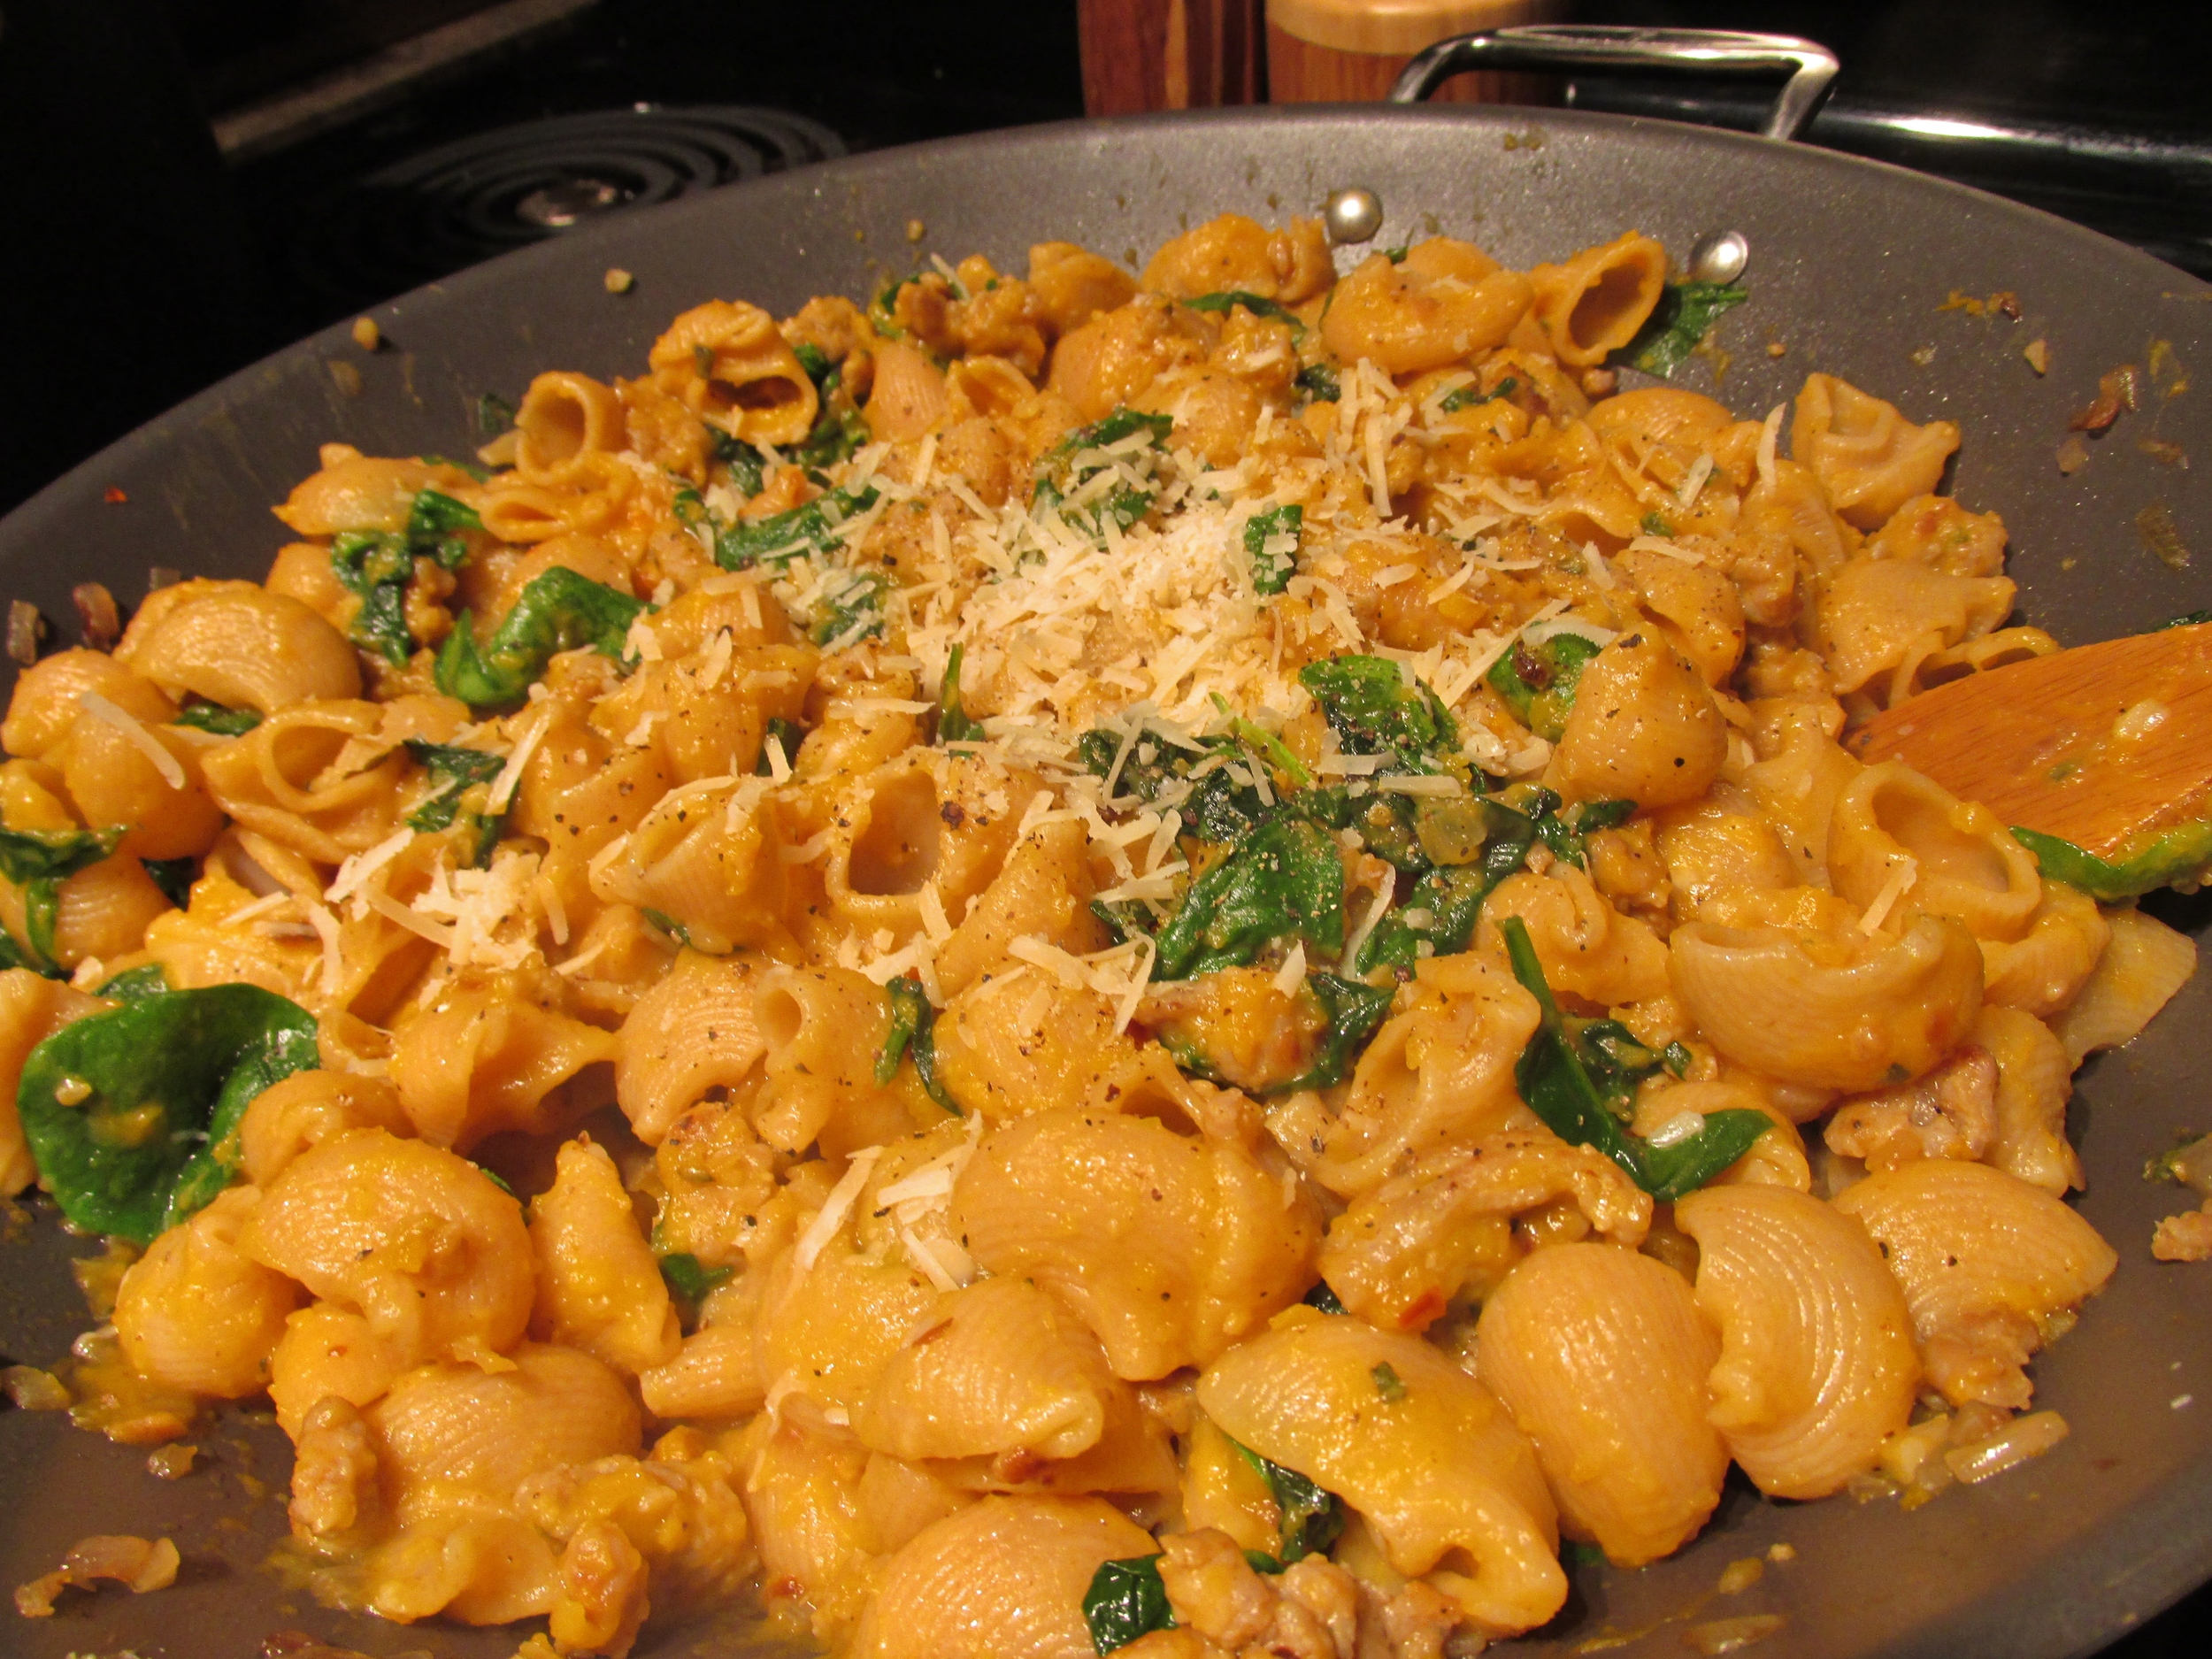 Roasted Butternut Squash, Sausage, and Spinach Pasta